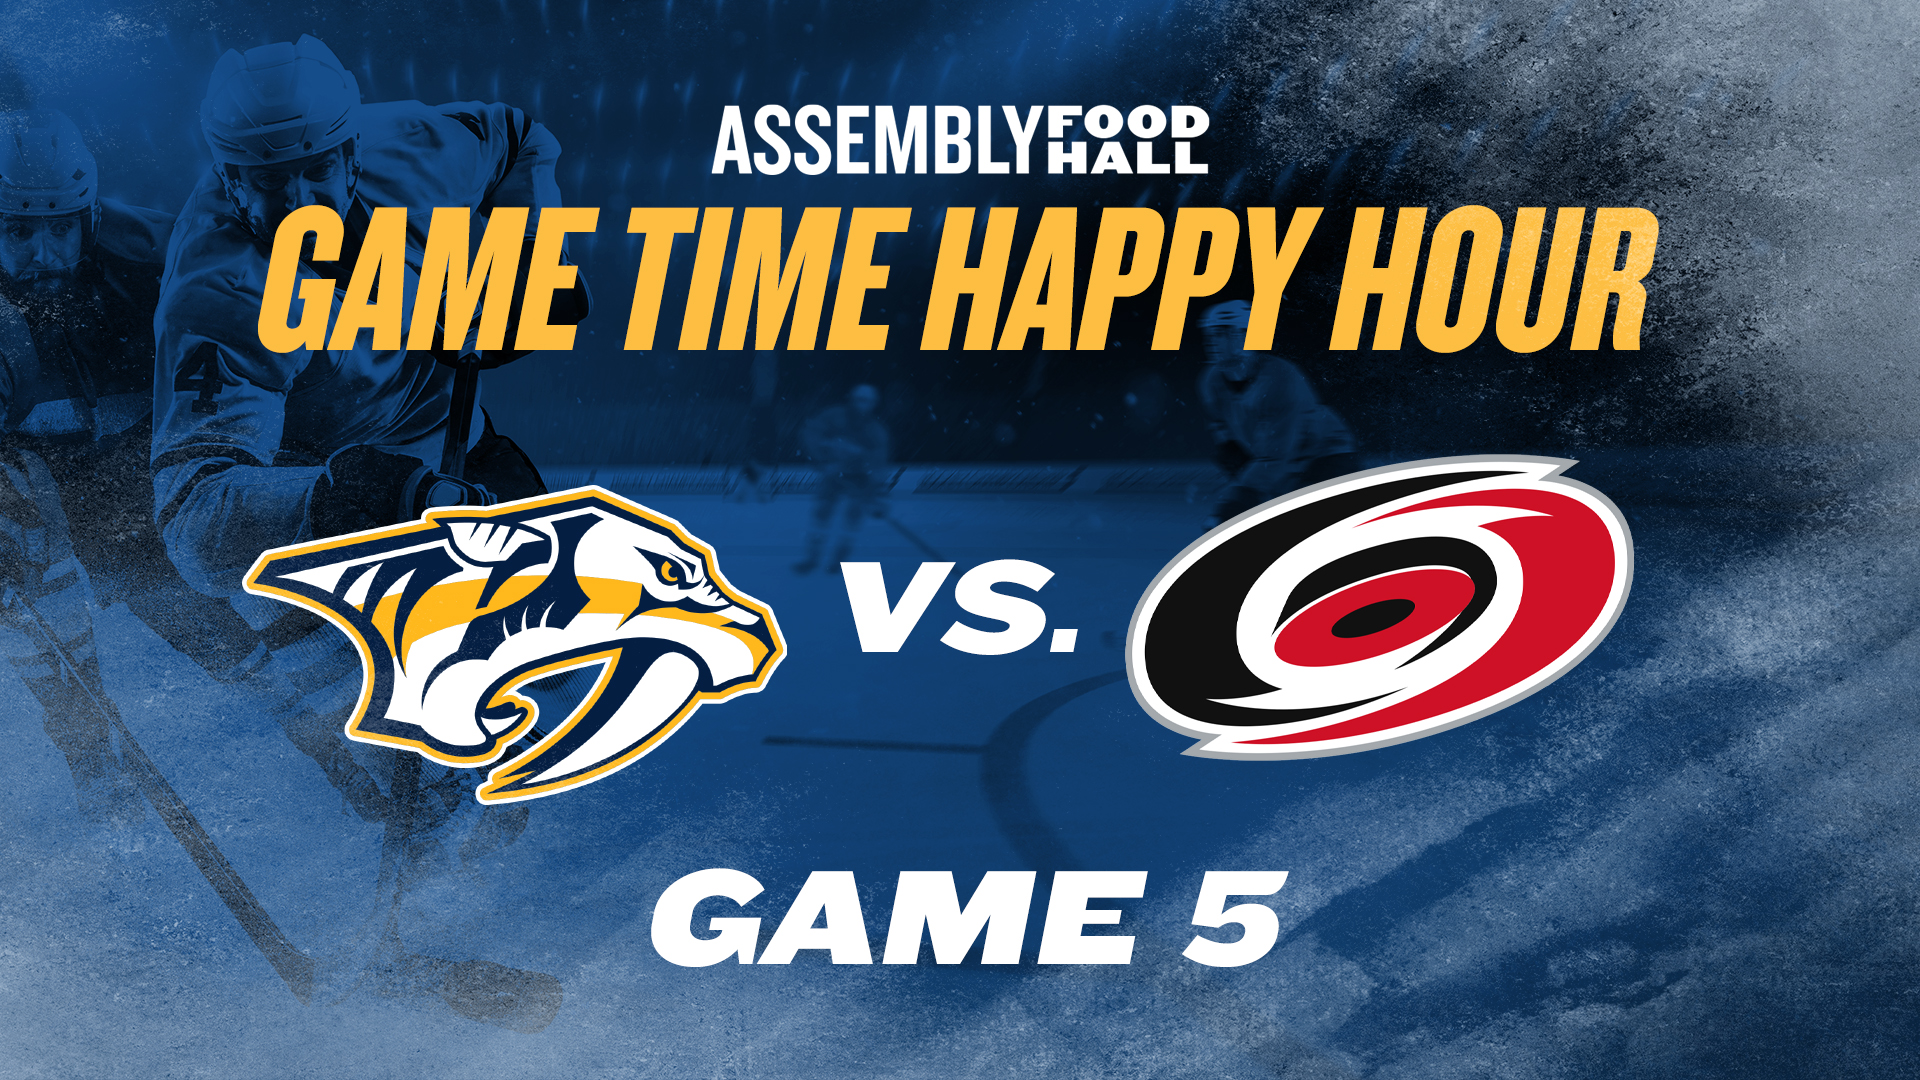 Promo image of Predators v. Hurricanes Game Time Happy Hour | Game 5